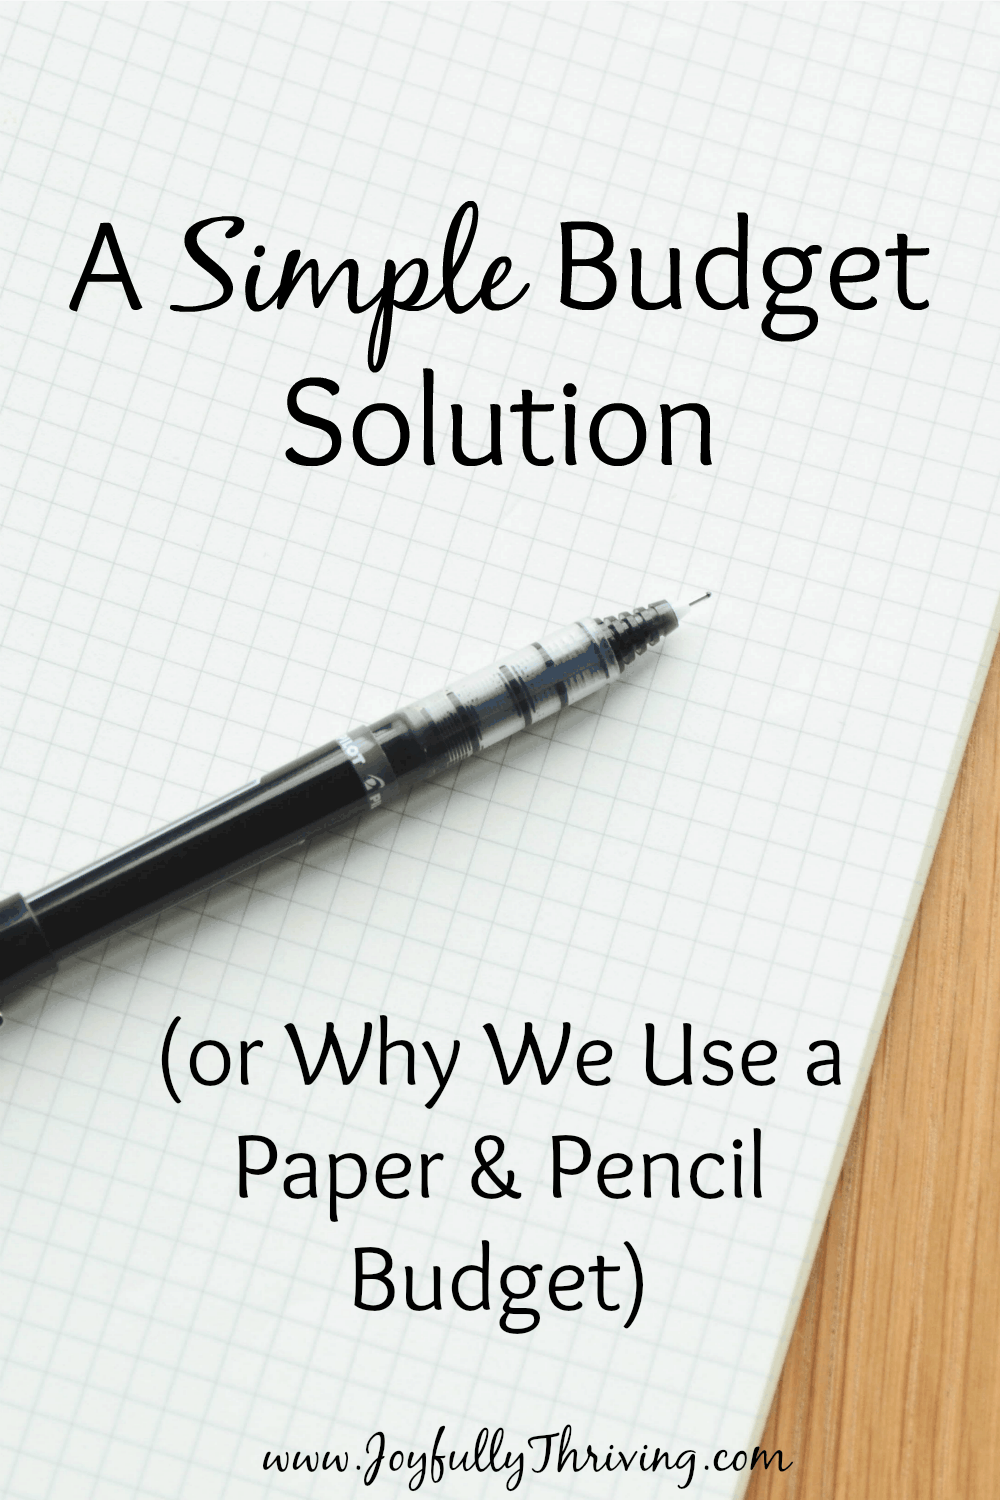 A Simple Budget Solution (Or Why We Use a Paper and Pencil Budget)